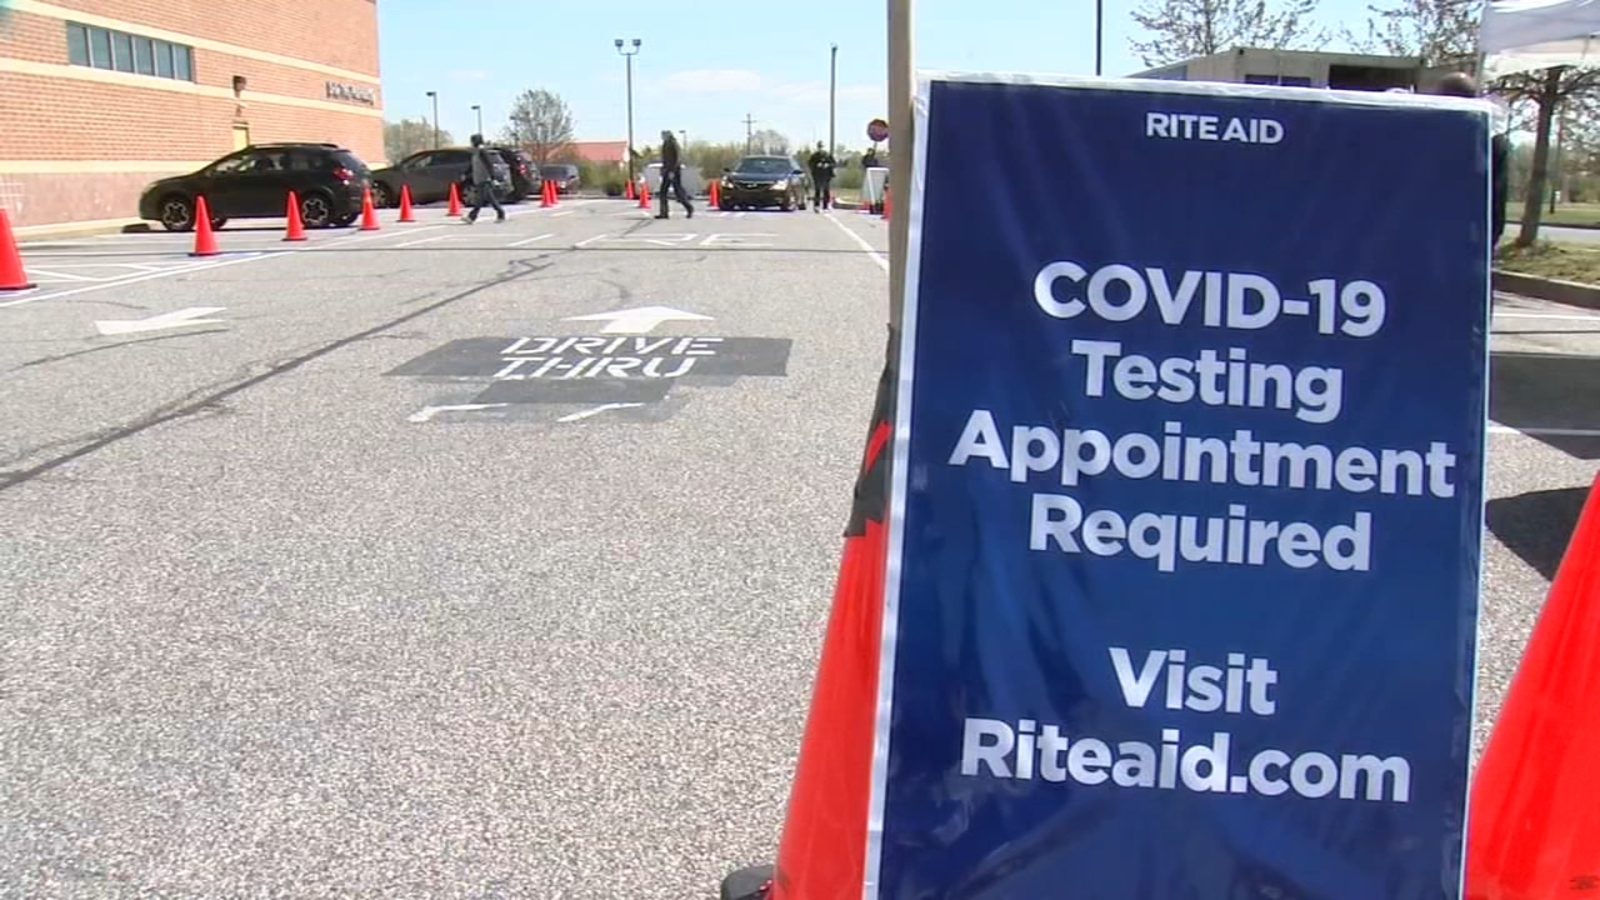 Coronavirus News Rite Aid Expands Covid 19 Testing To Include Asymptomatic Patients 6abc Philadelphia